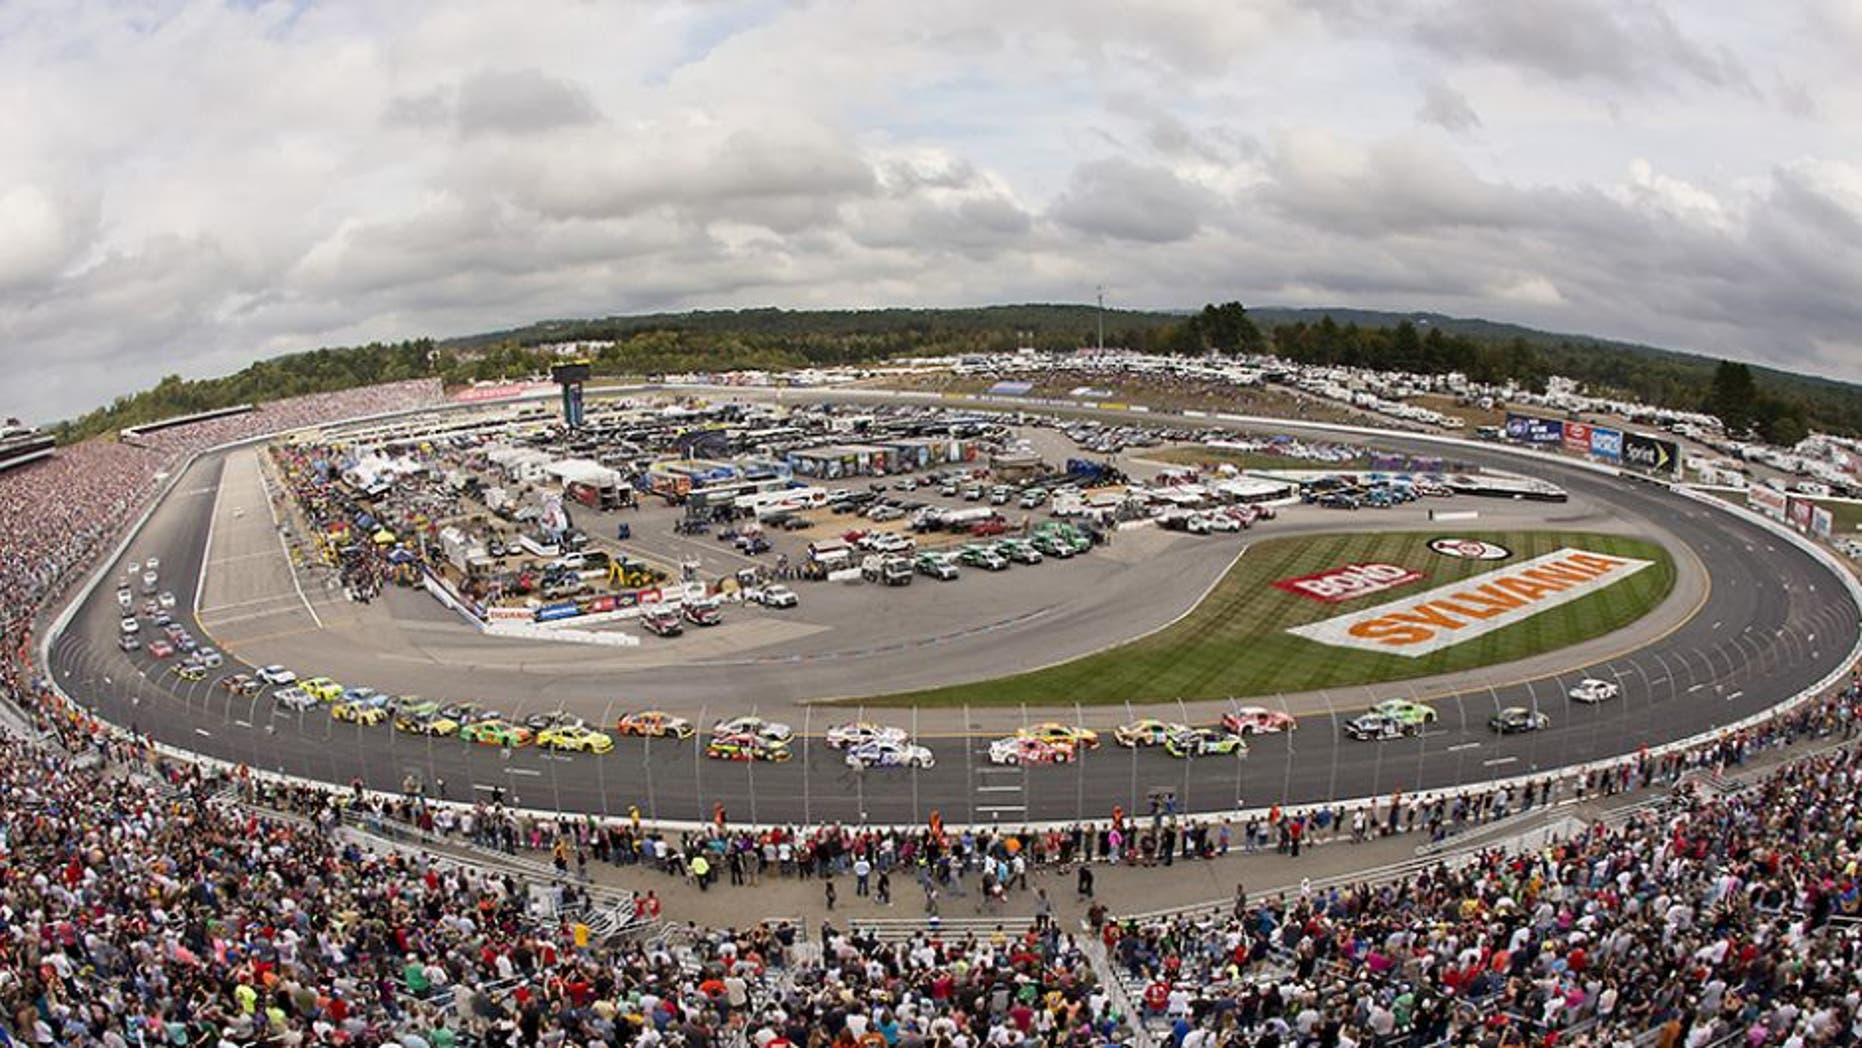 LOUDON, NH - SEPTEMBER 21: The start of the NASCAR Sylvania 300 at the New Hampshire Motor Speedway on Sunday, September 21, 2014. (Photo by Matthew J. Lee/The Boston Globe via Getty Images)